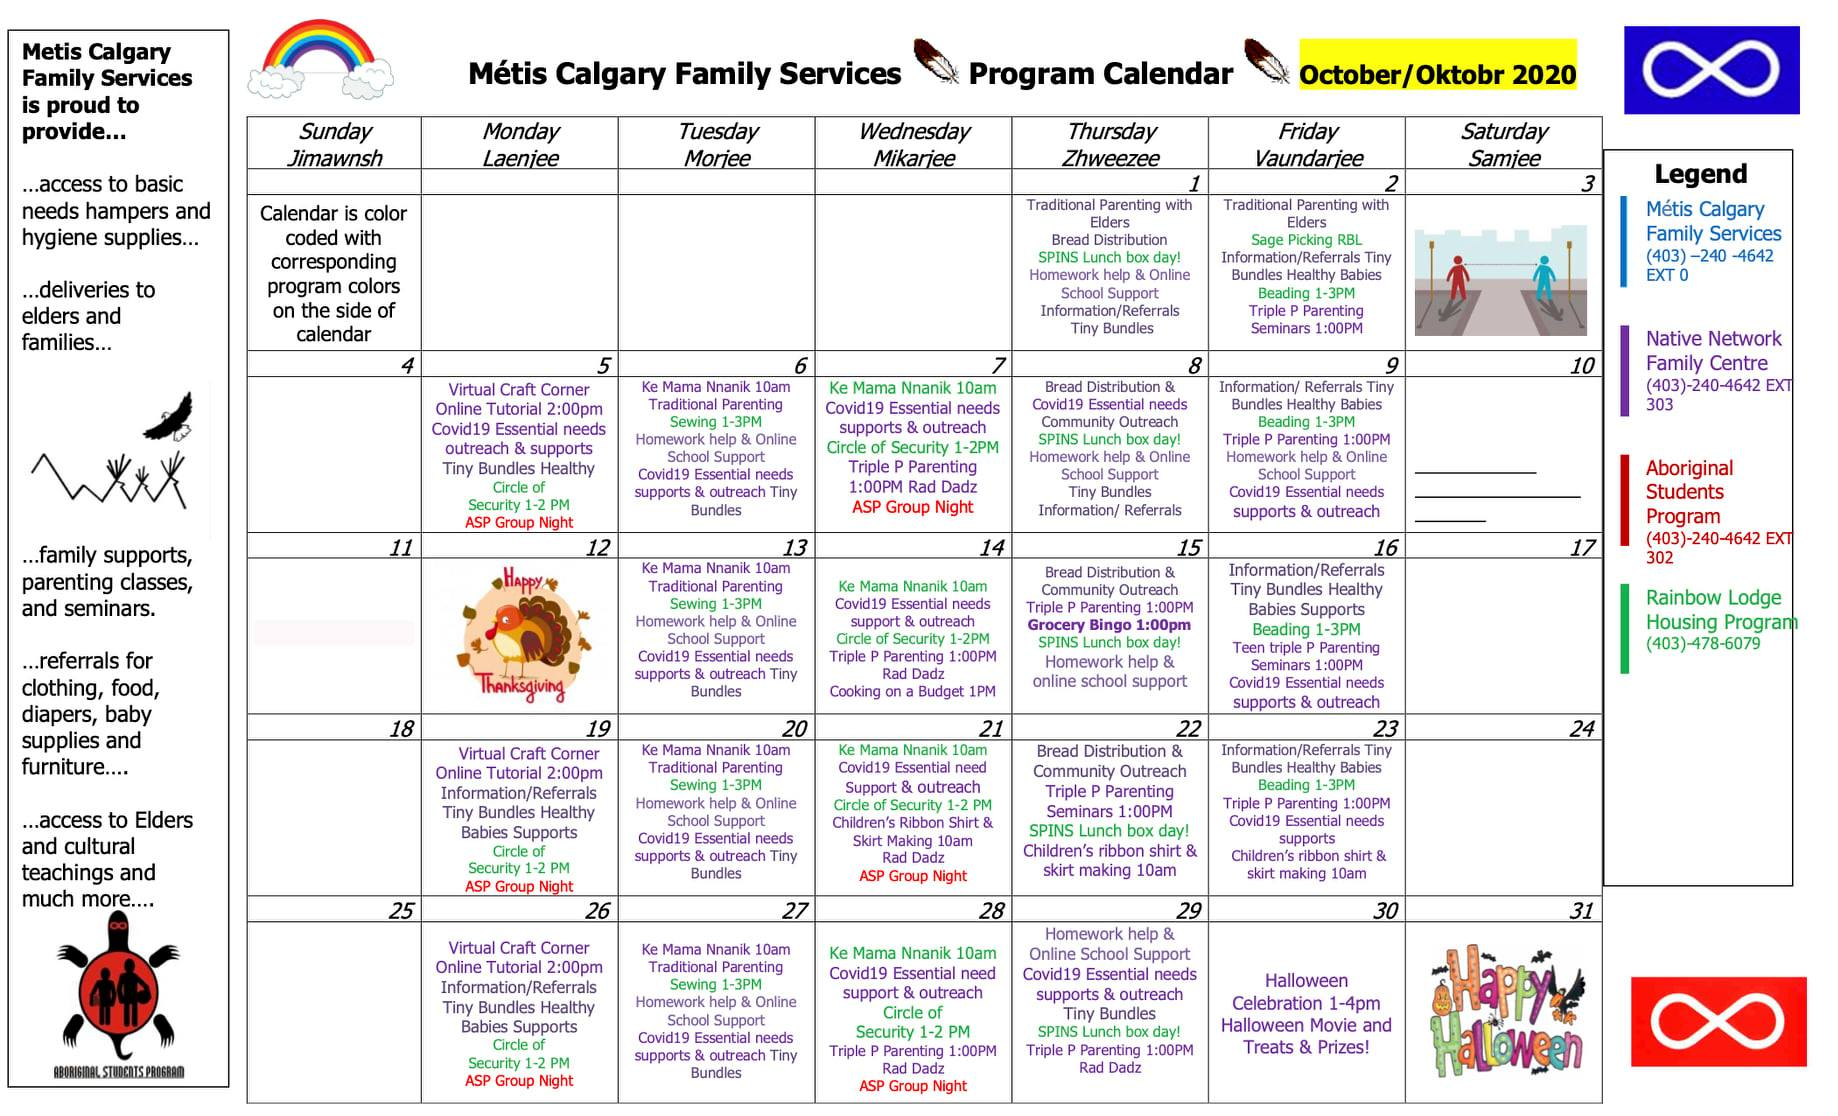 Metis Child & Family schedule Oct